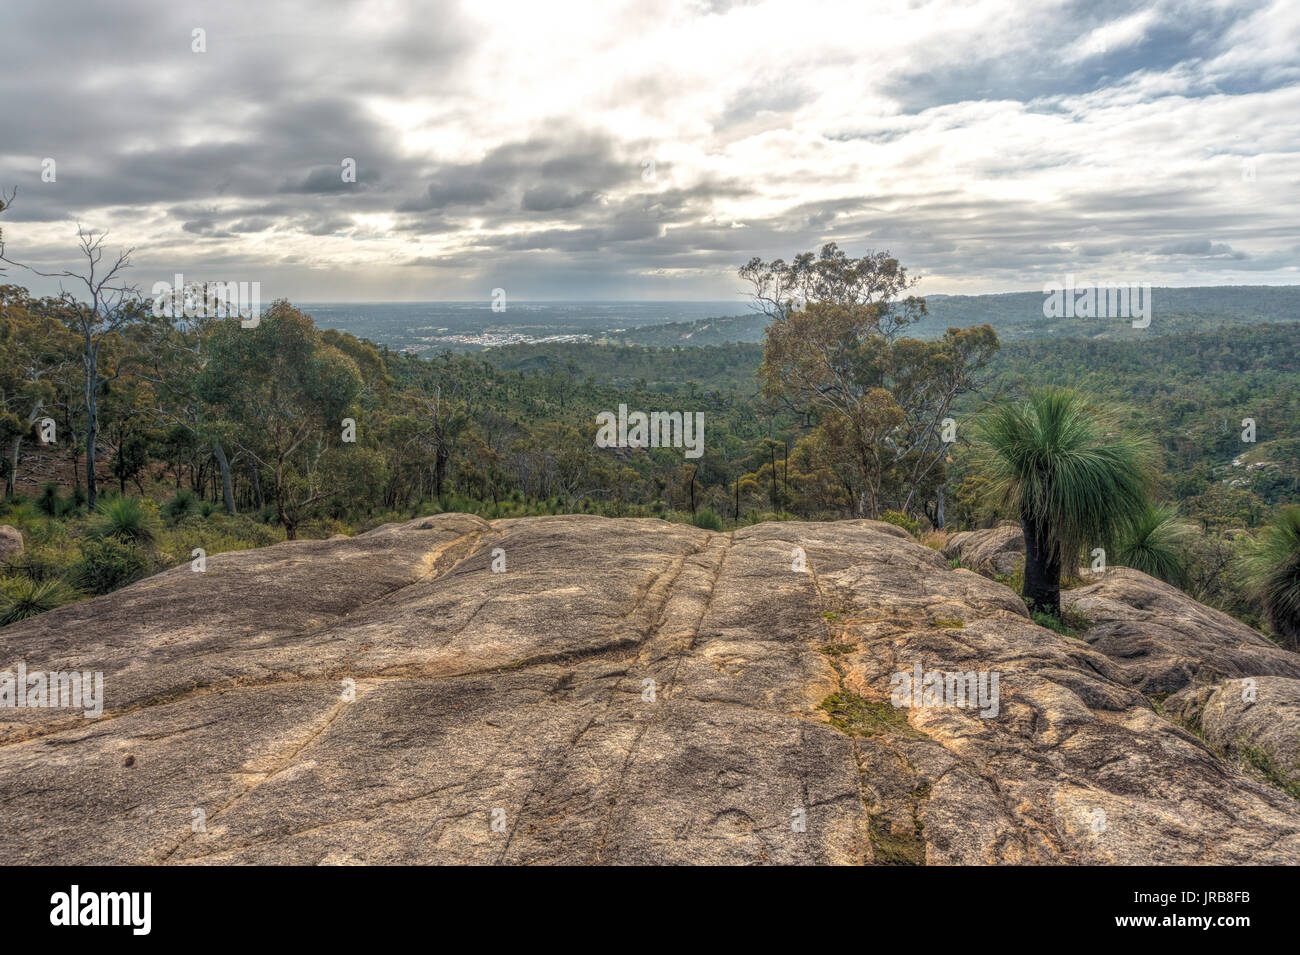 Lookout in John Forrest national park, view towards Perth, Darling range, Western Australia - Stock Image